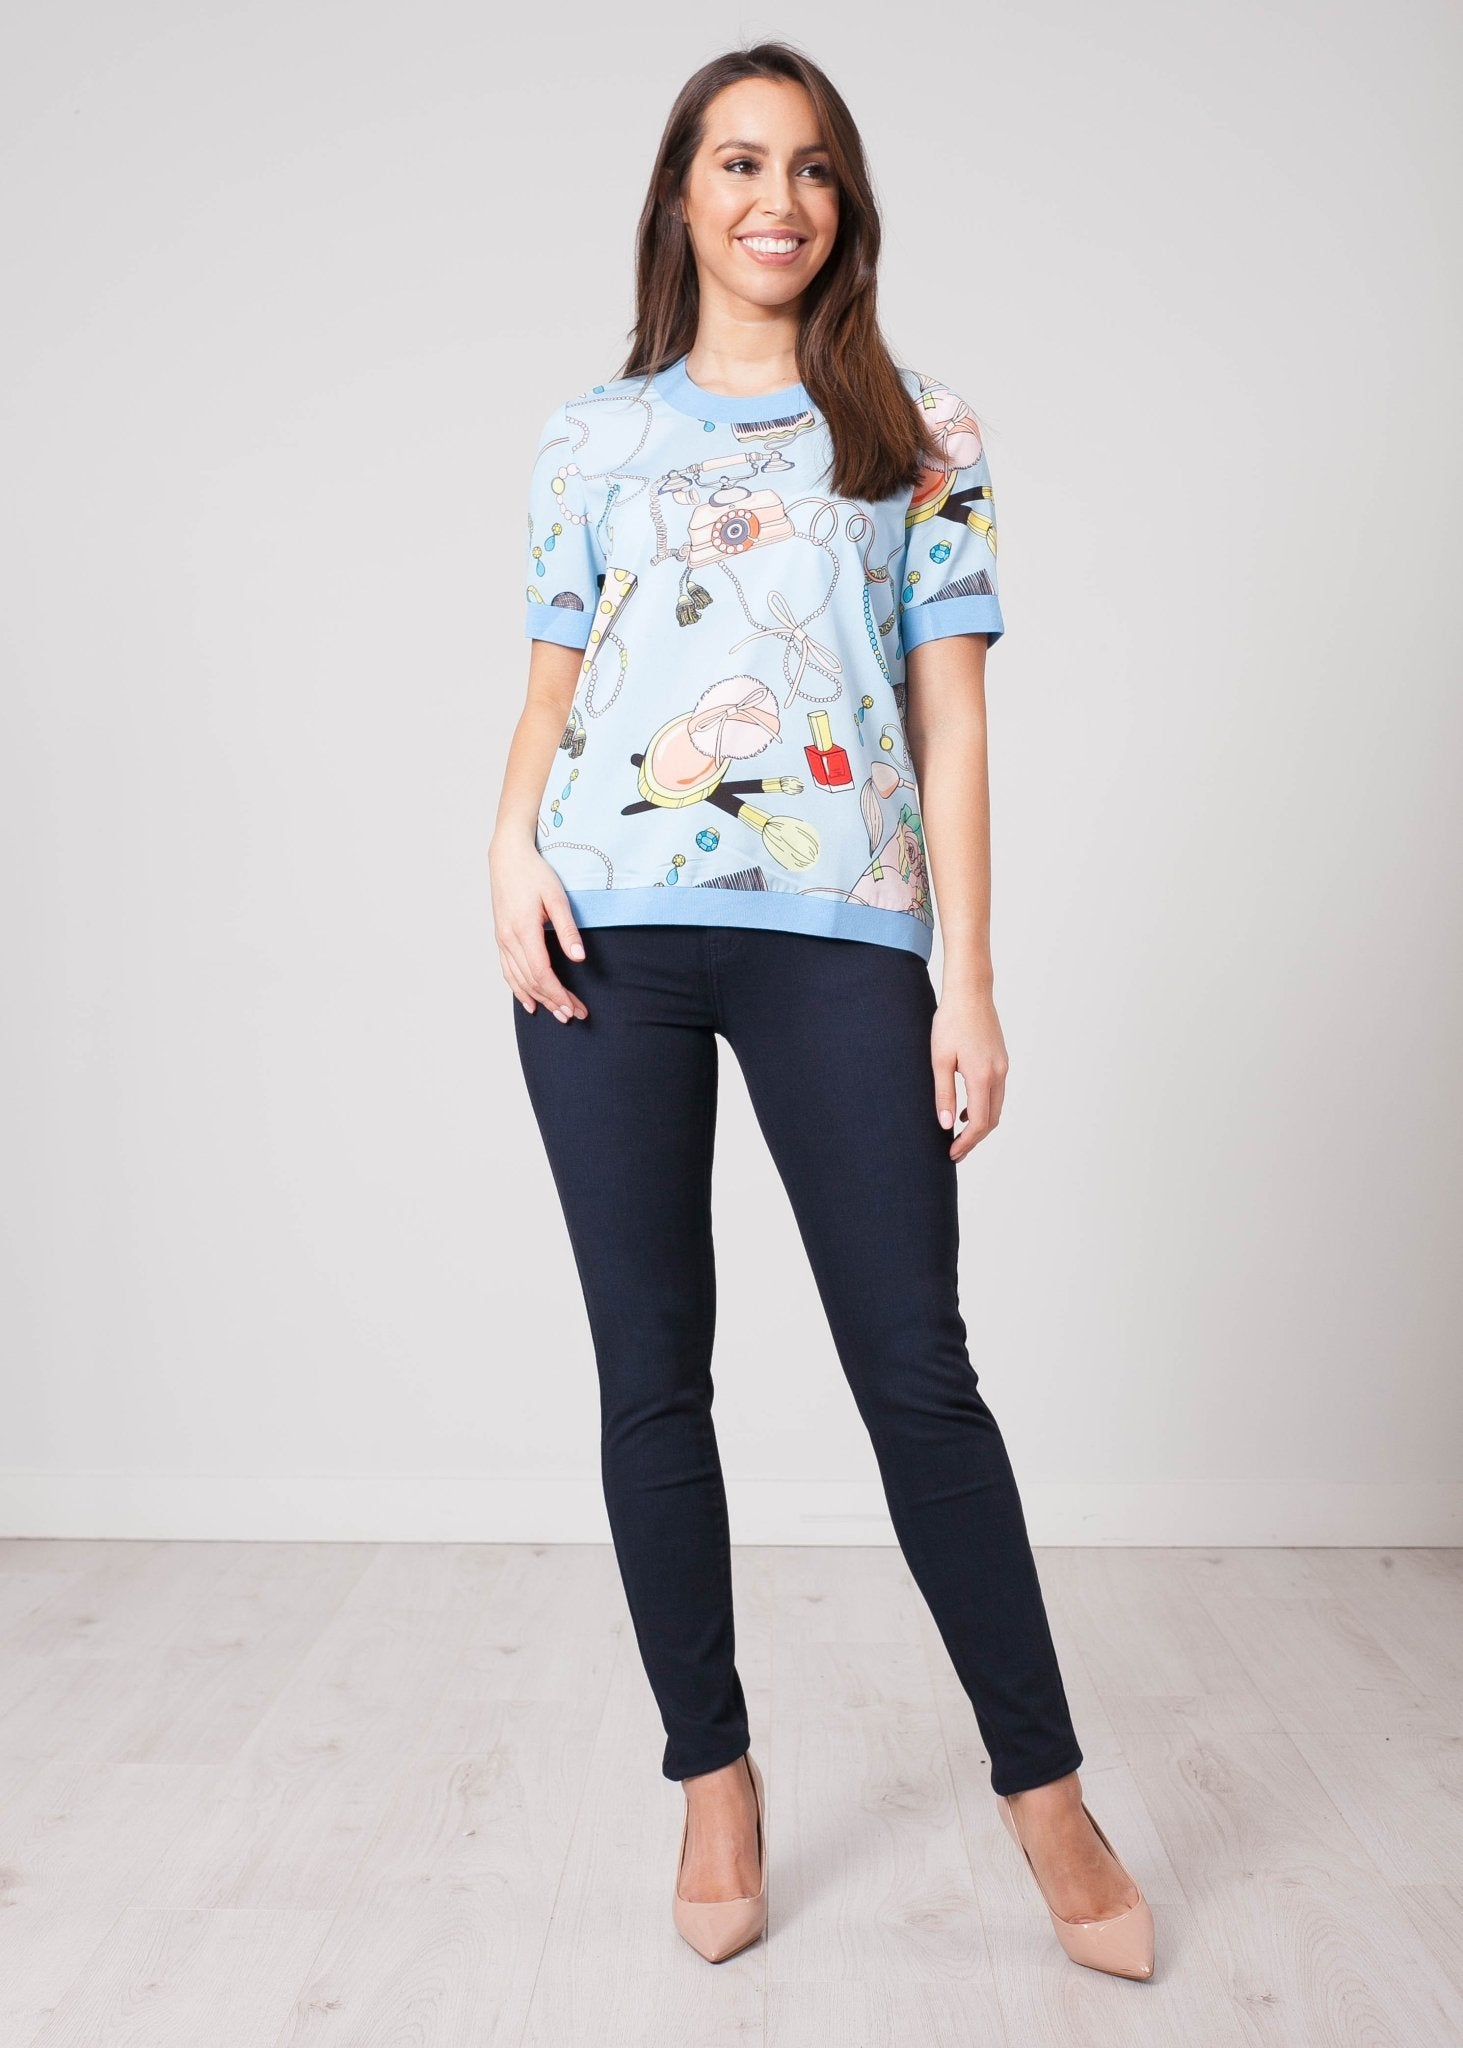 Aliyah Blue Printed Top - The Walk in Wardrobe